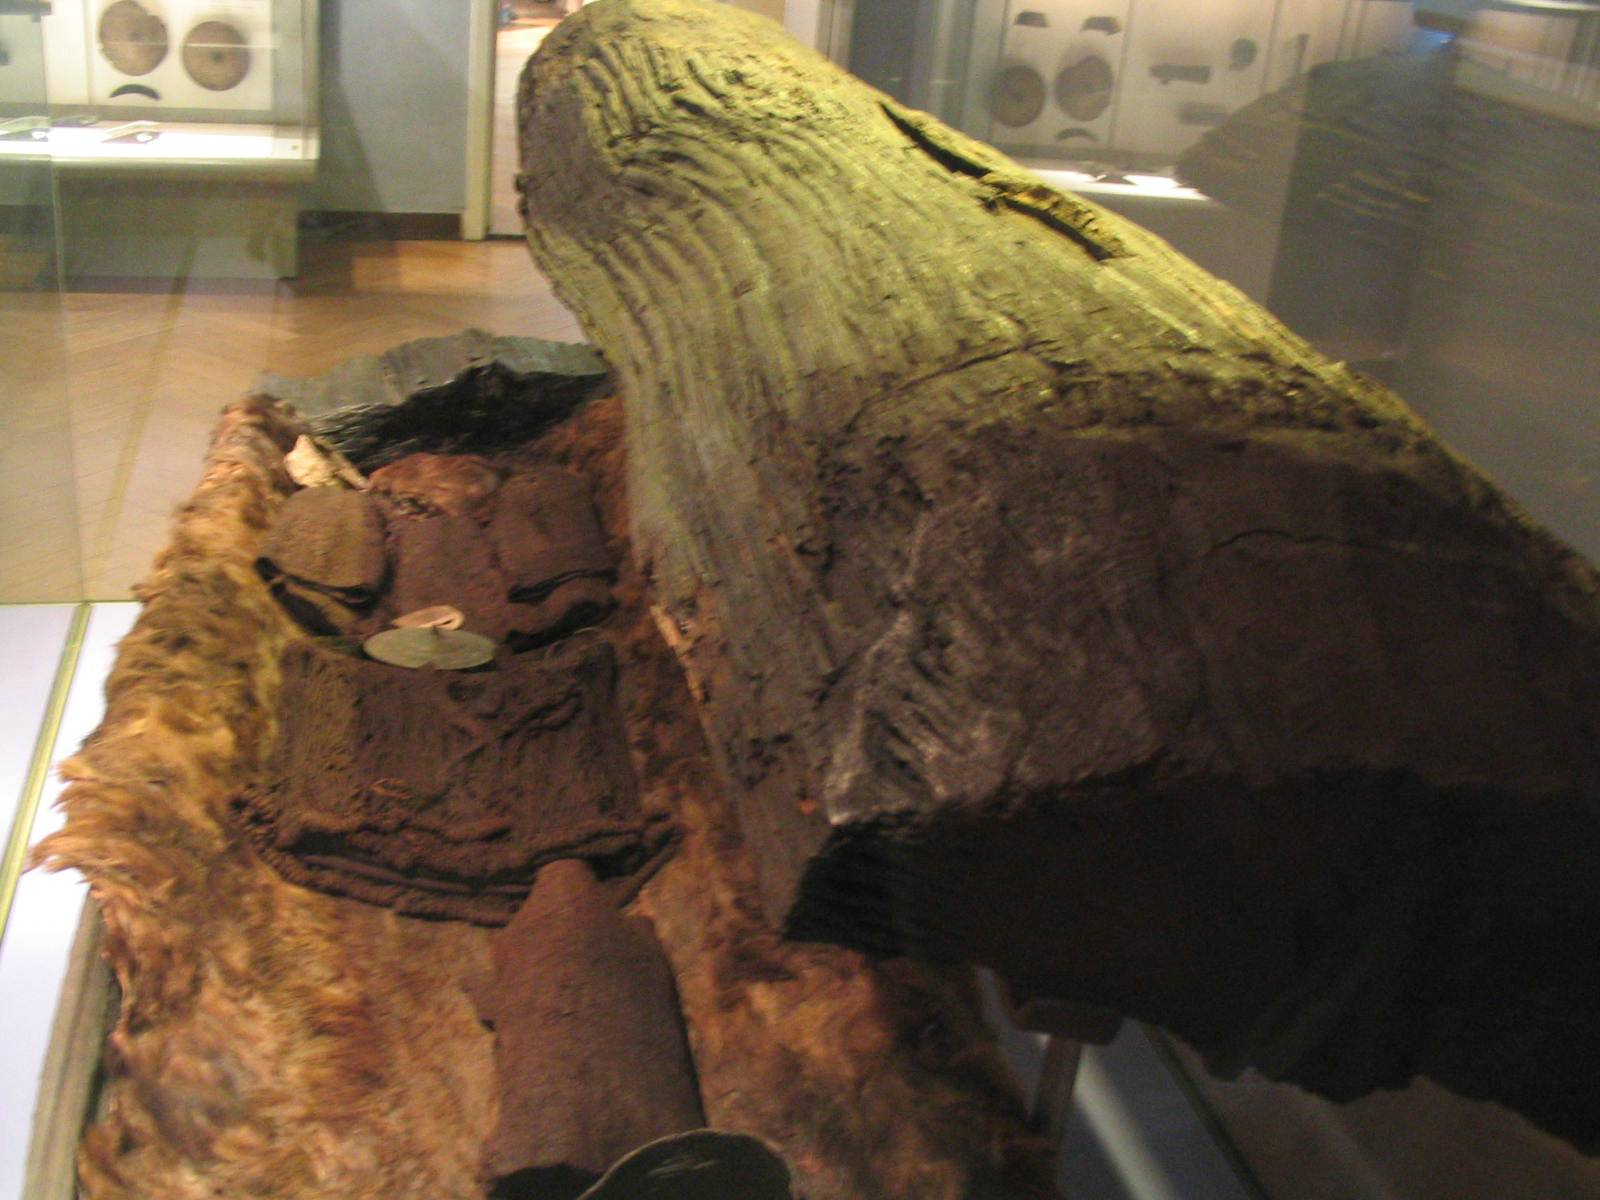 4,000-Year-Old Tree Trunk Coffin Discovered in Golf Course Pond